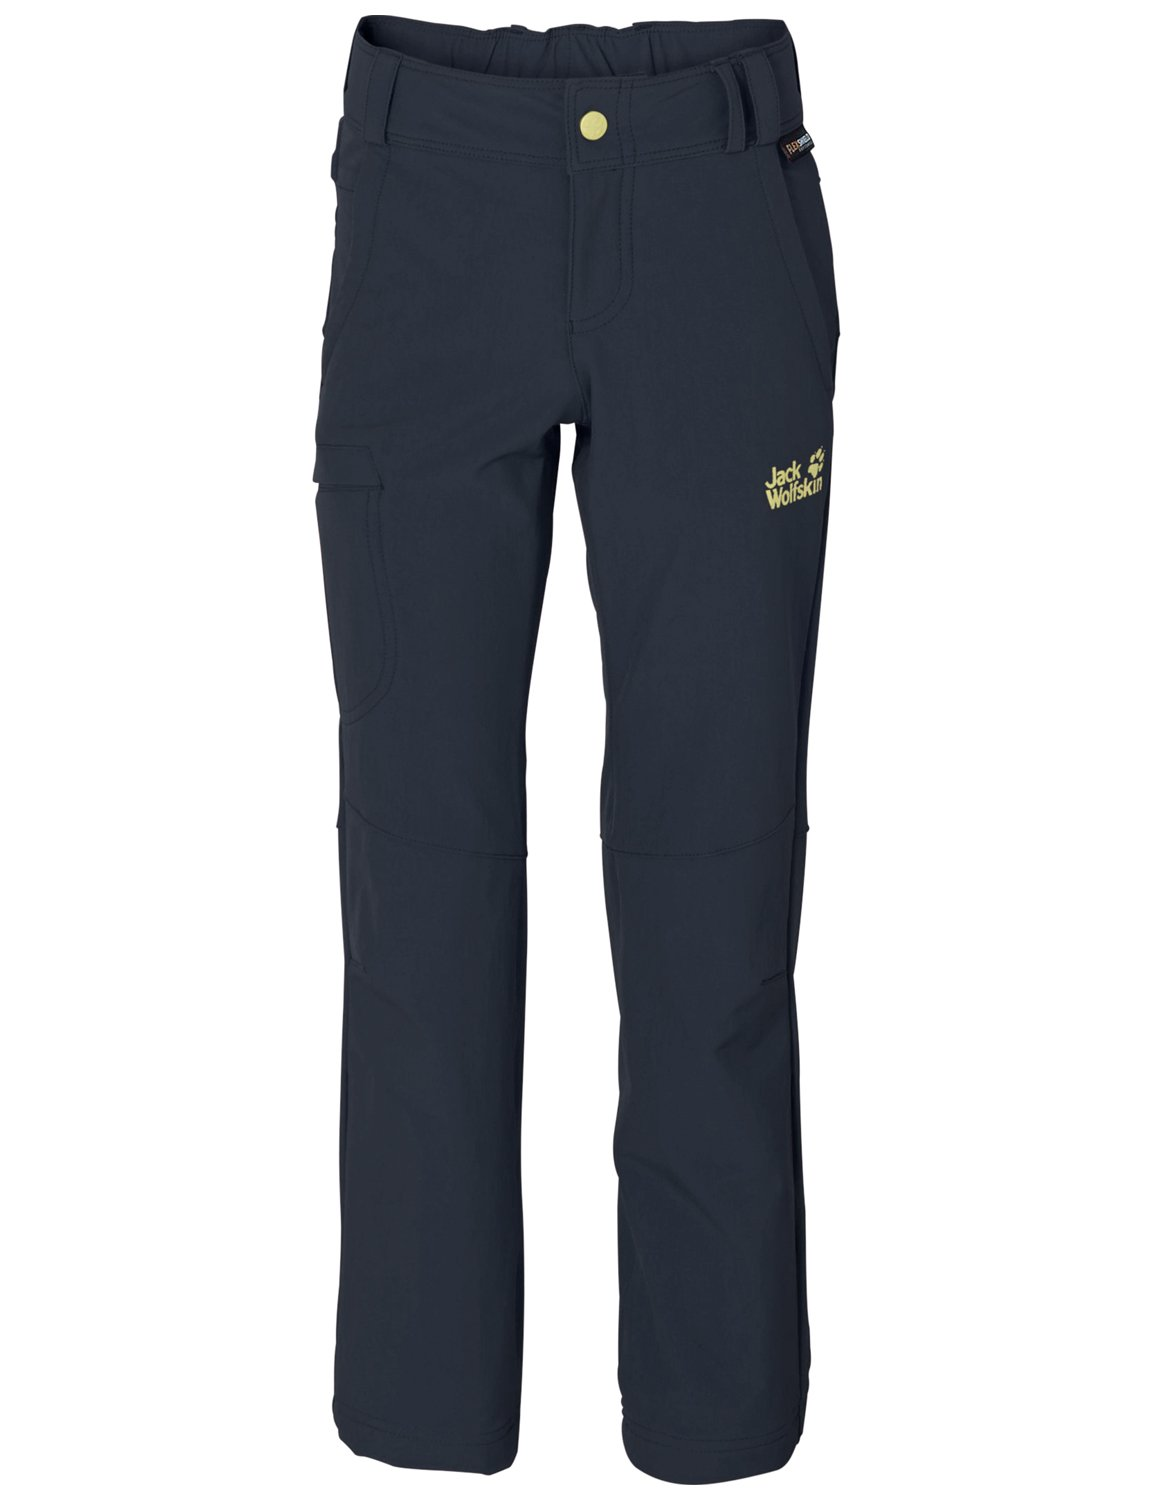 Jack Wolfskin Girl's Activate II Soft Shell Pant, Night Blue, 104